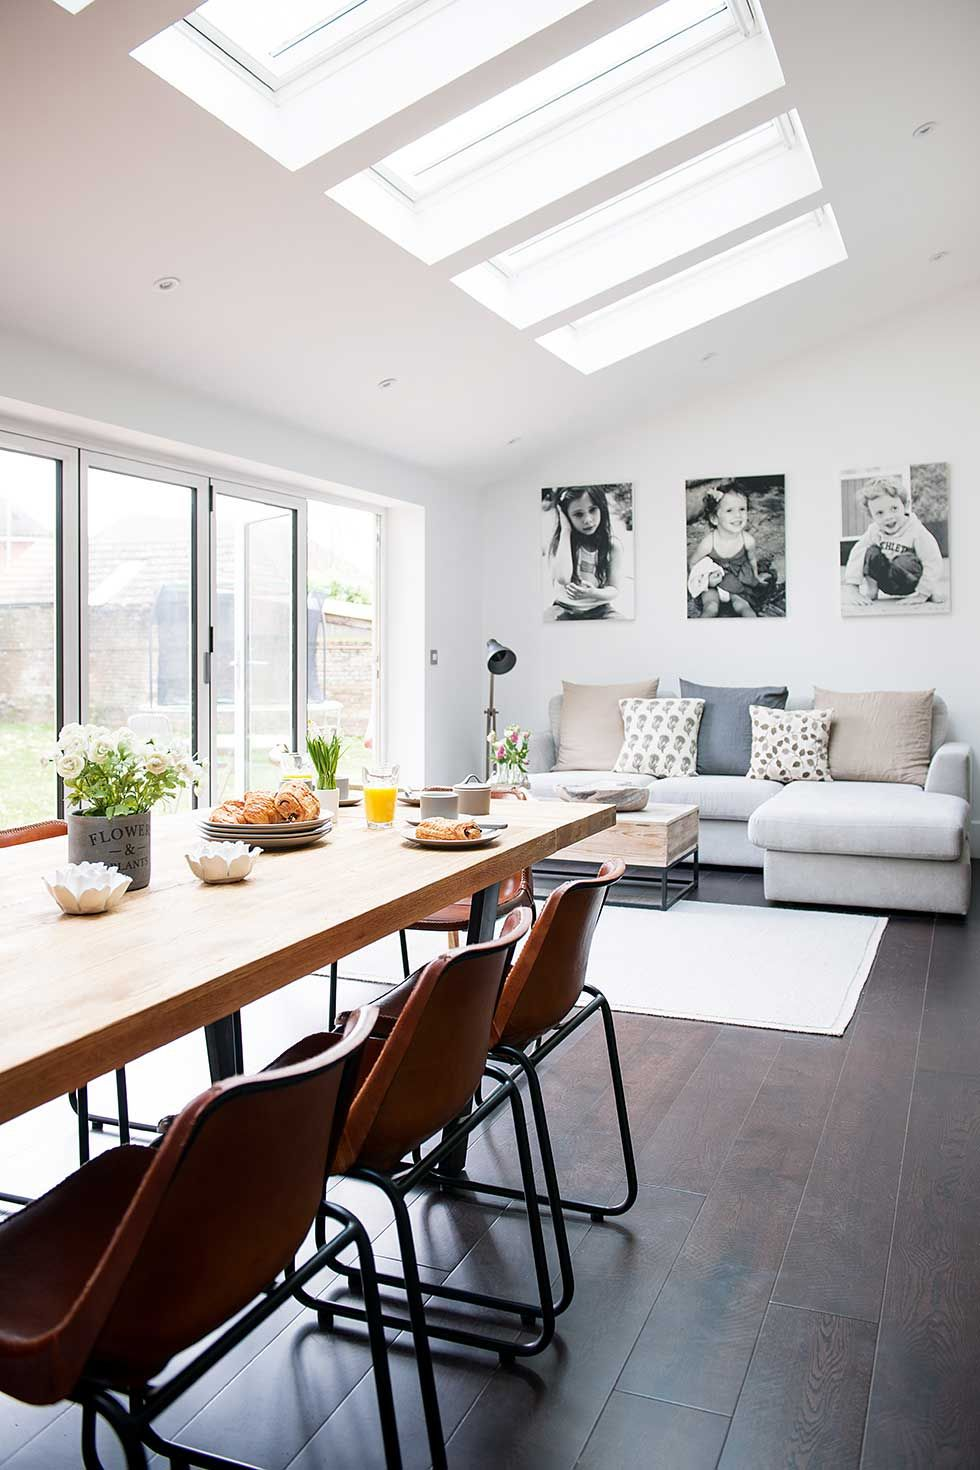 Living Room Extension Pictures Tiny Kitchen Ideas Industrial Dining Rooflights With Sofa And Table